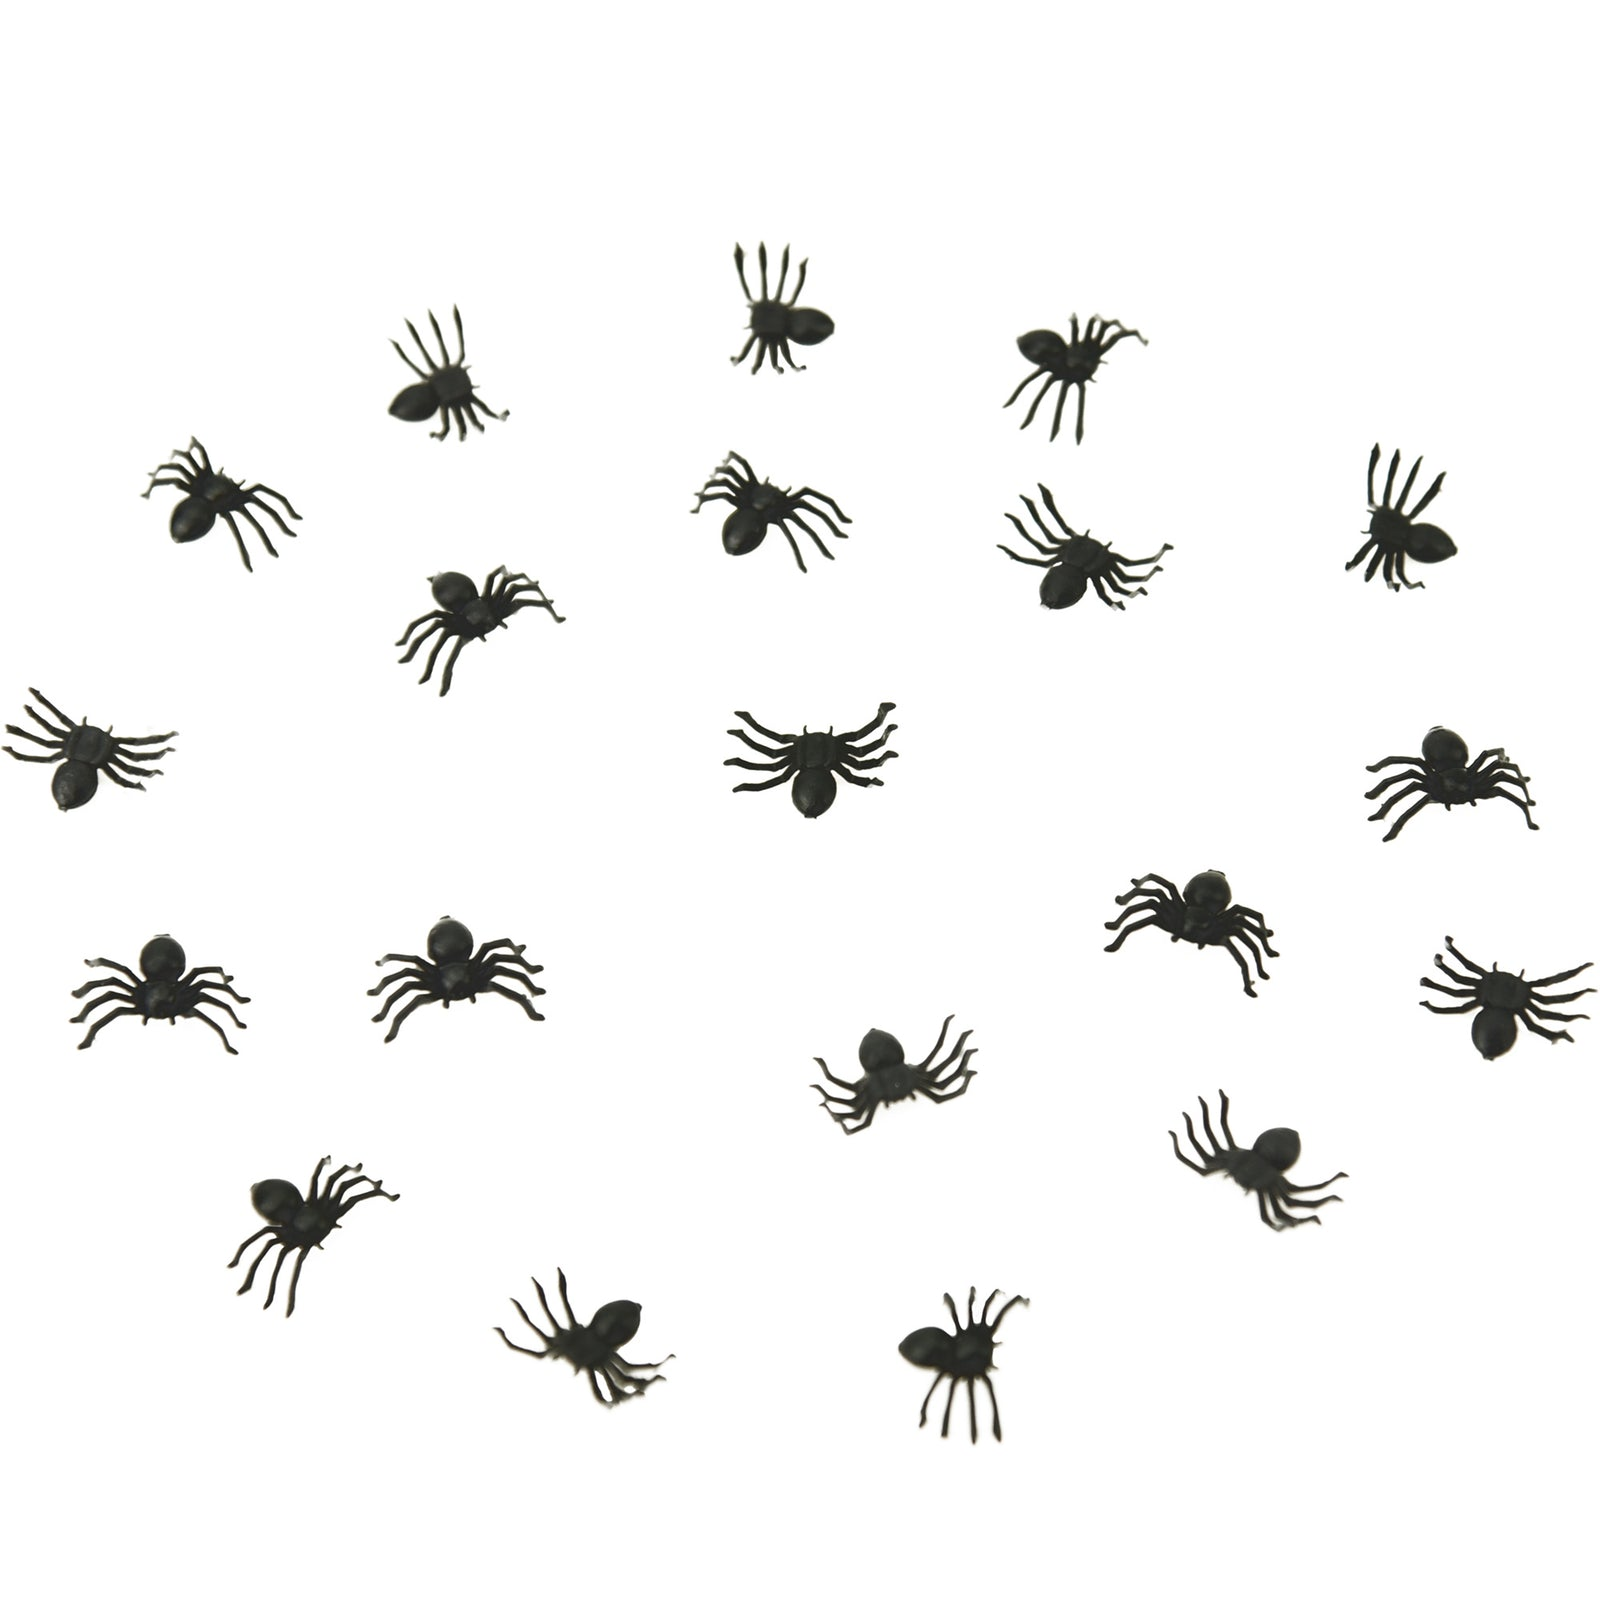 FiveSeasonStuff 50 Pcs x Black Plastic Spiders | Realistic Looking Fake Spider | Party Pranks | Practical Jokes | Halloween Props | Prank Insect